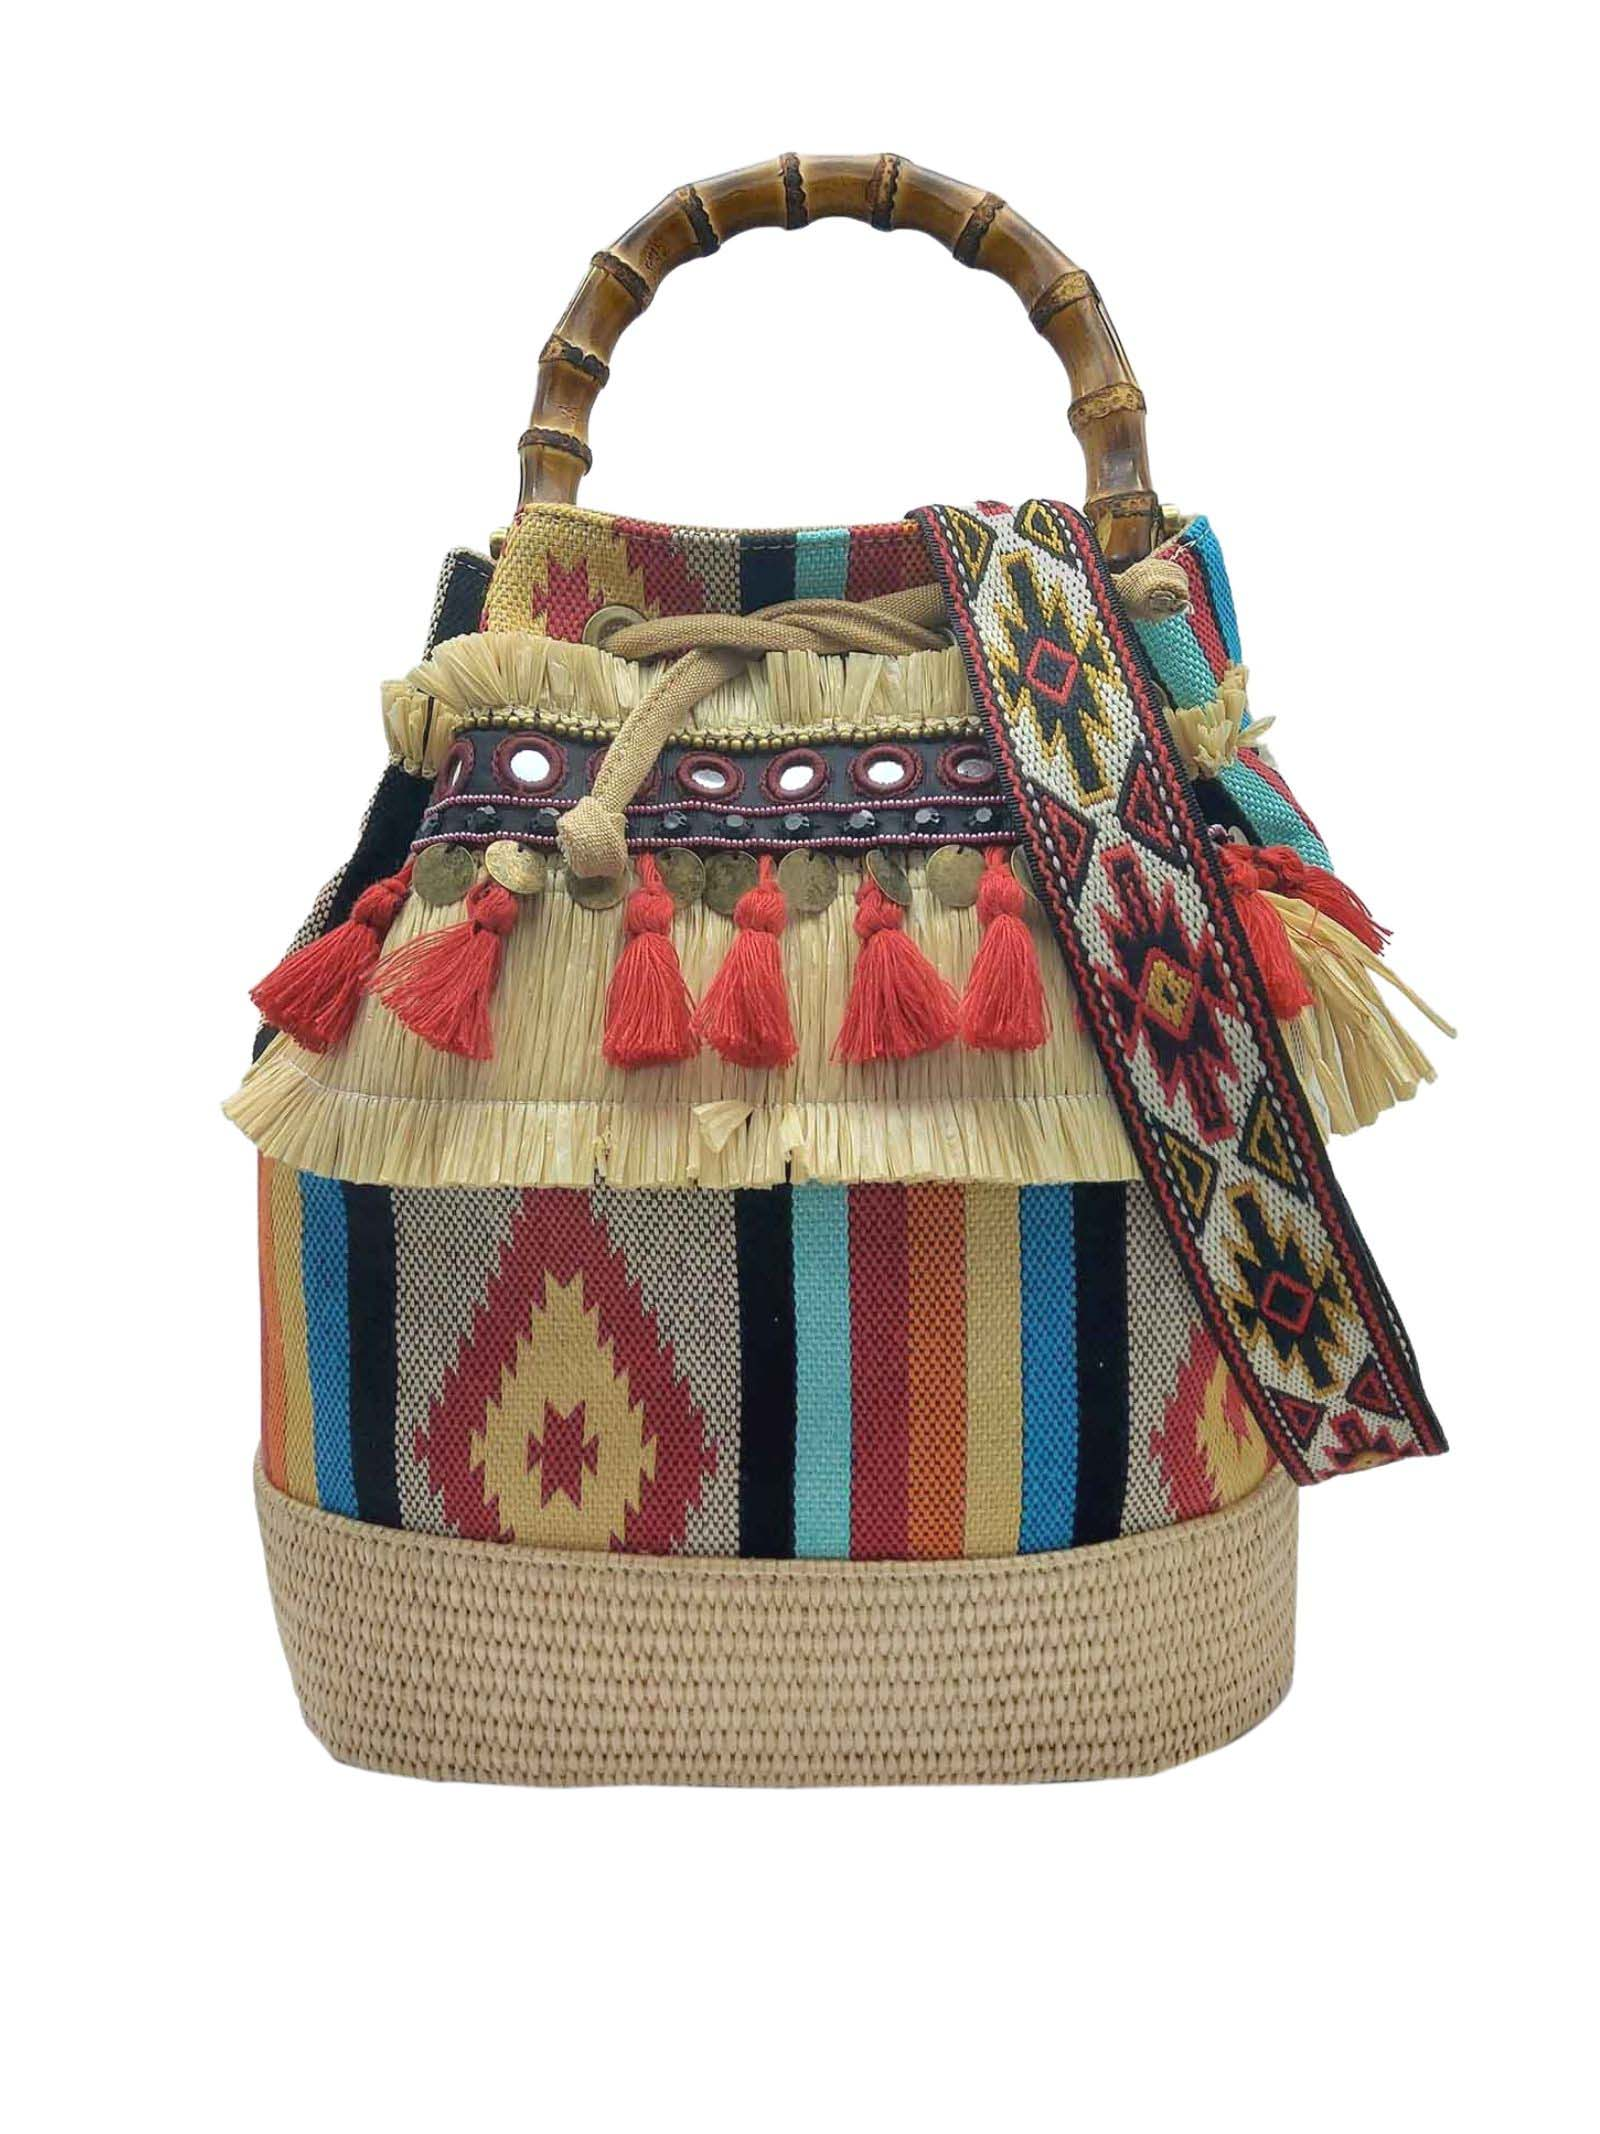 Woman Bucket Bag Jacquard Beige and Red with Fringes and Bamboo Handles Via Mail Bag | Bags and backpacks | TRIBEH01